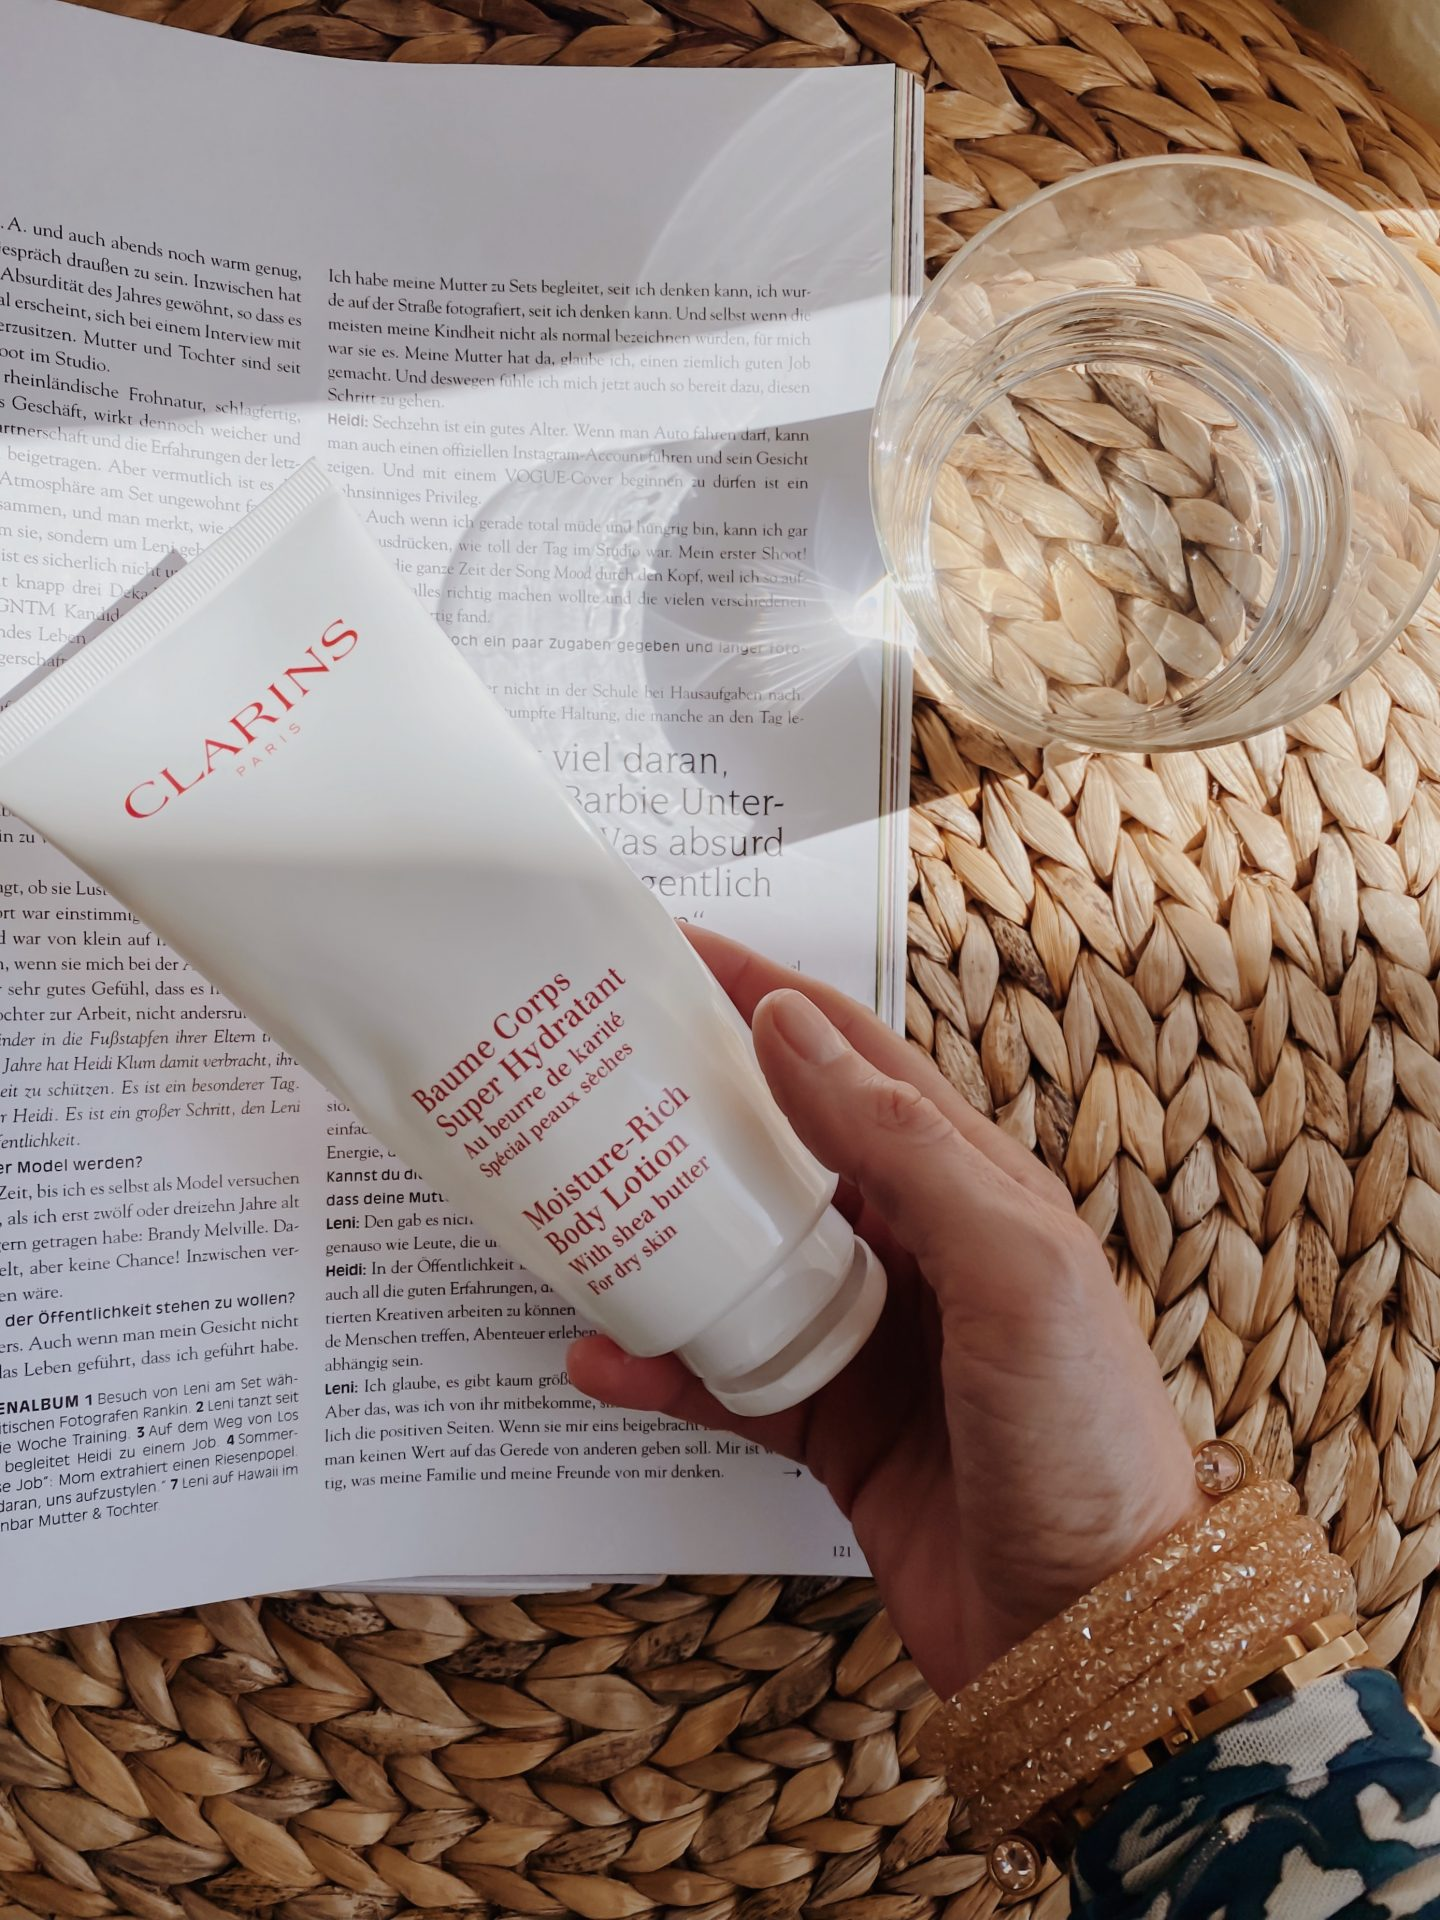 Baume-Corps-Super-Hydrant-Clarins